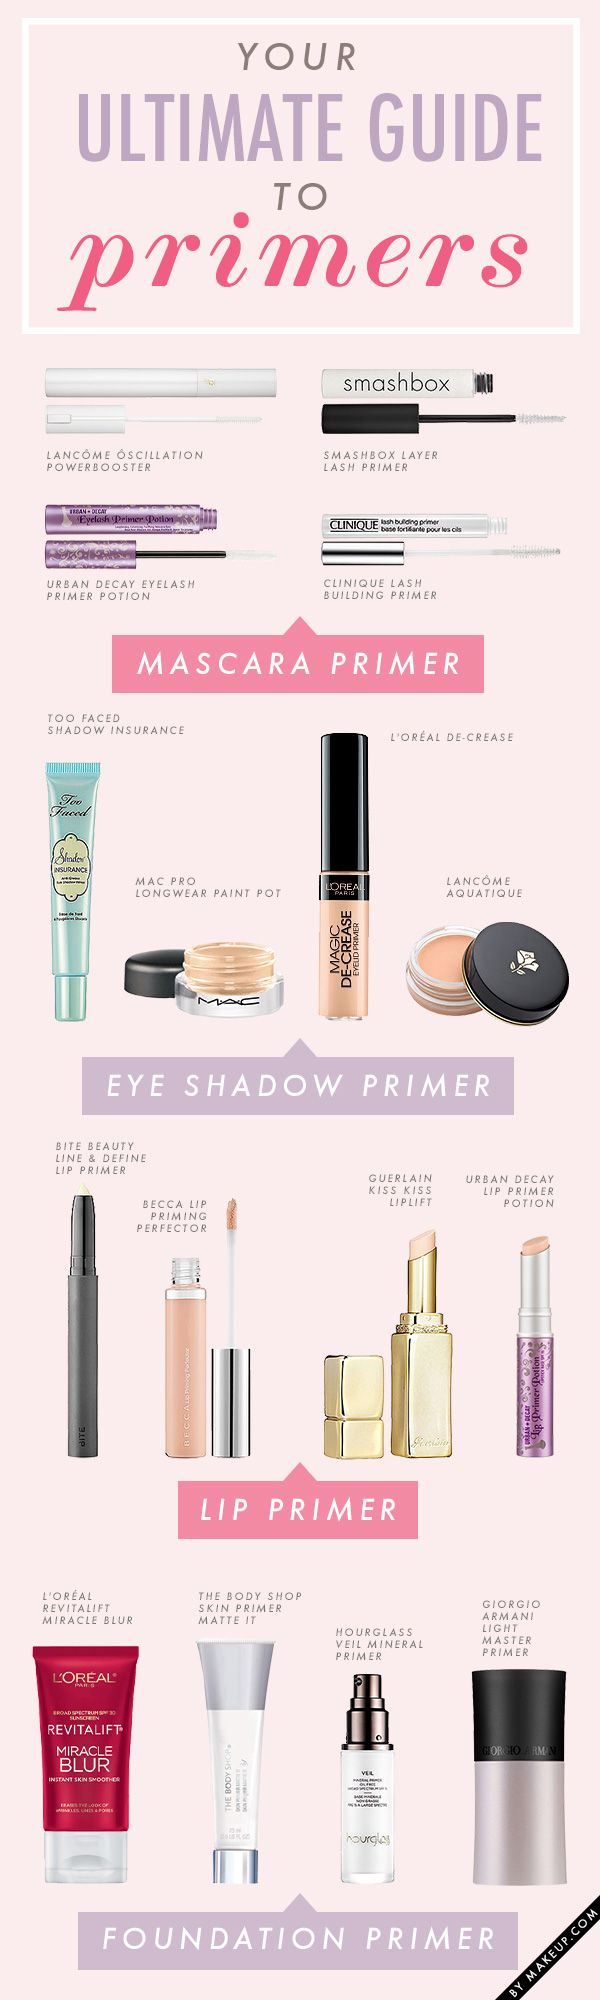 Primer guide!!! Didn't know there was a c such thing as mascara primer! I'm such a beginner! Lol